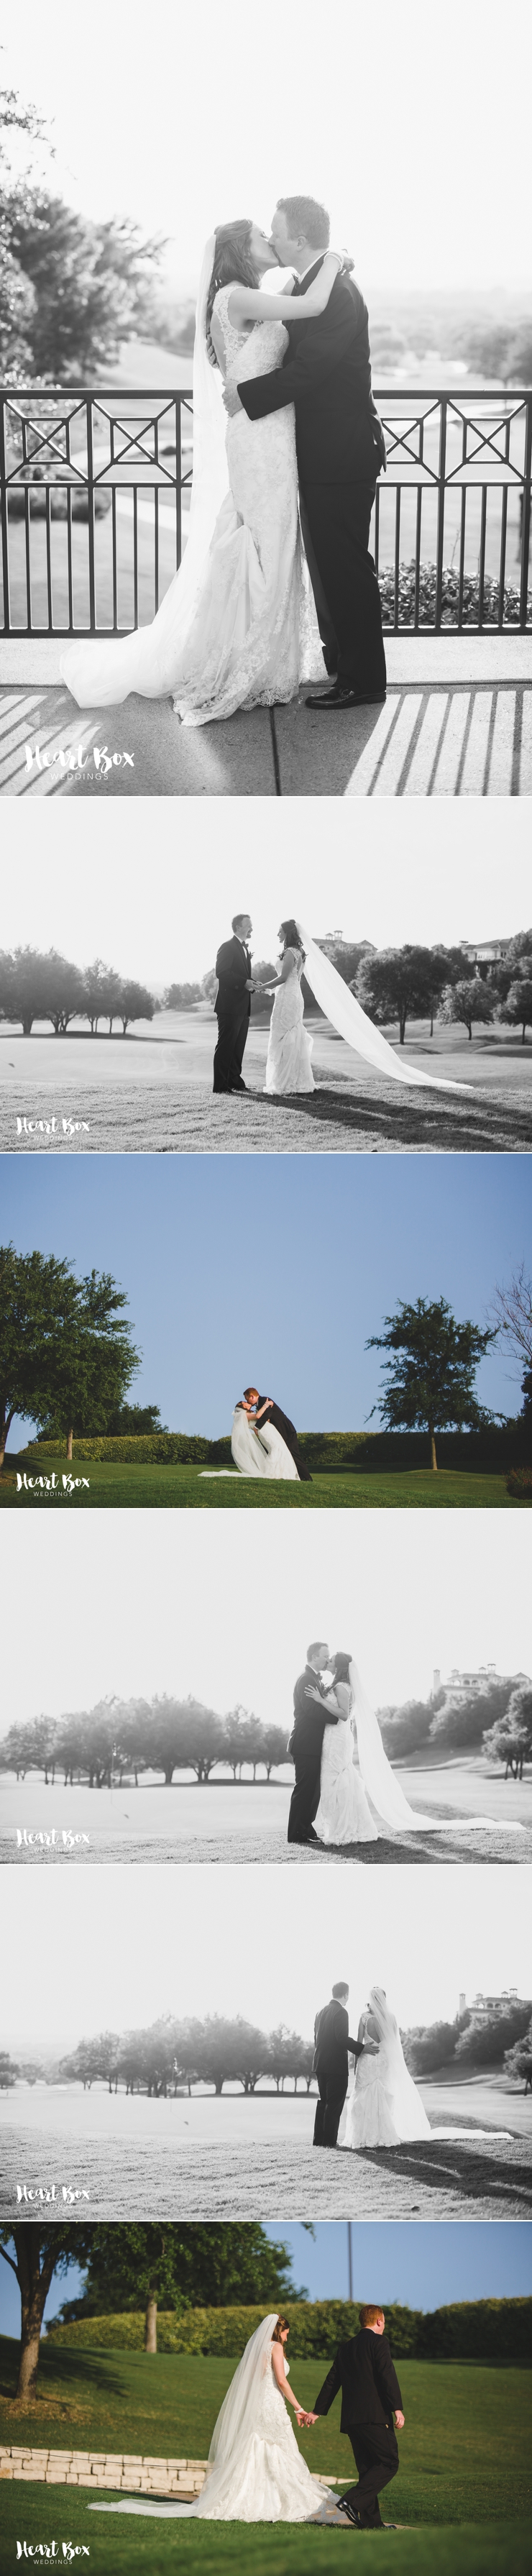 Price Wedding Blog Collages 9.jpg